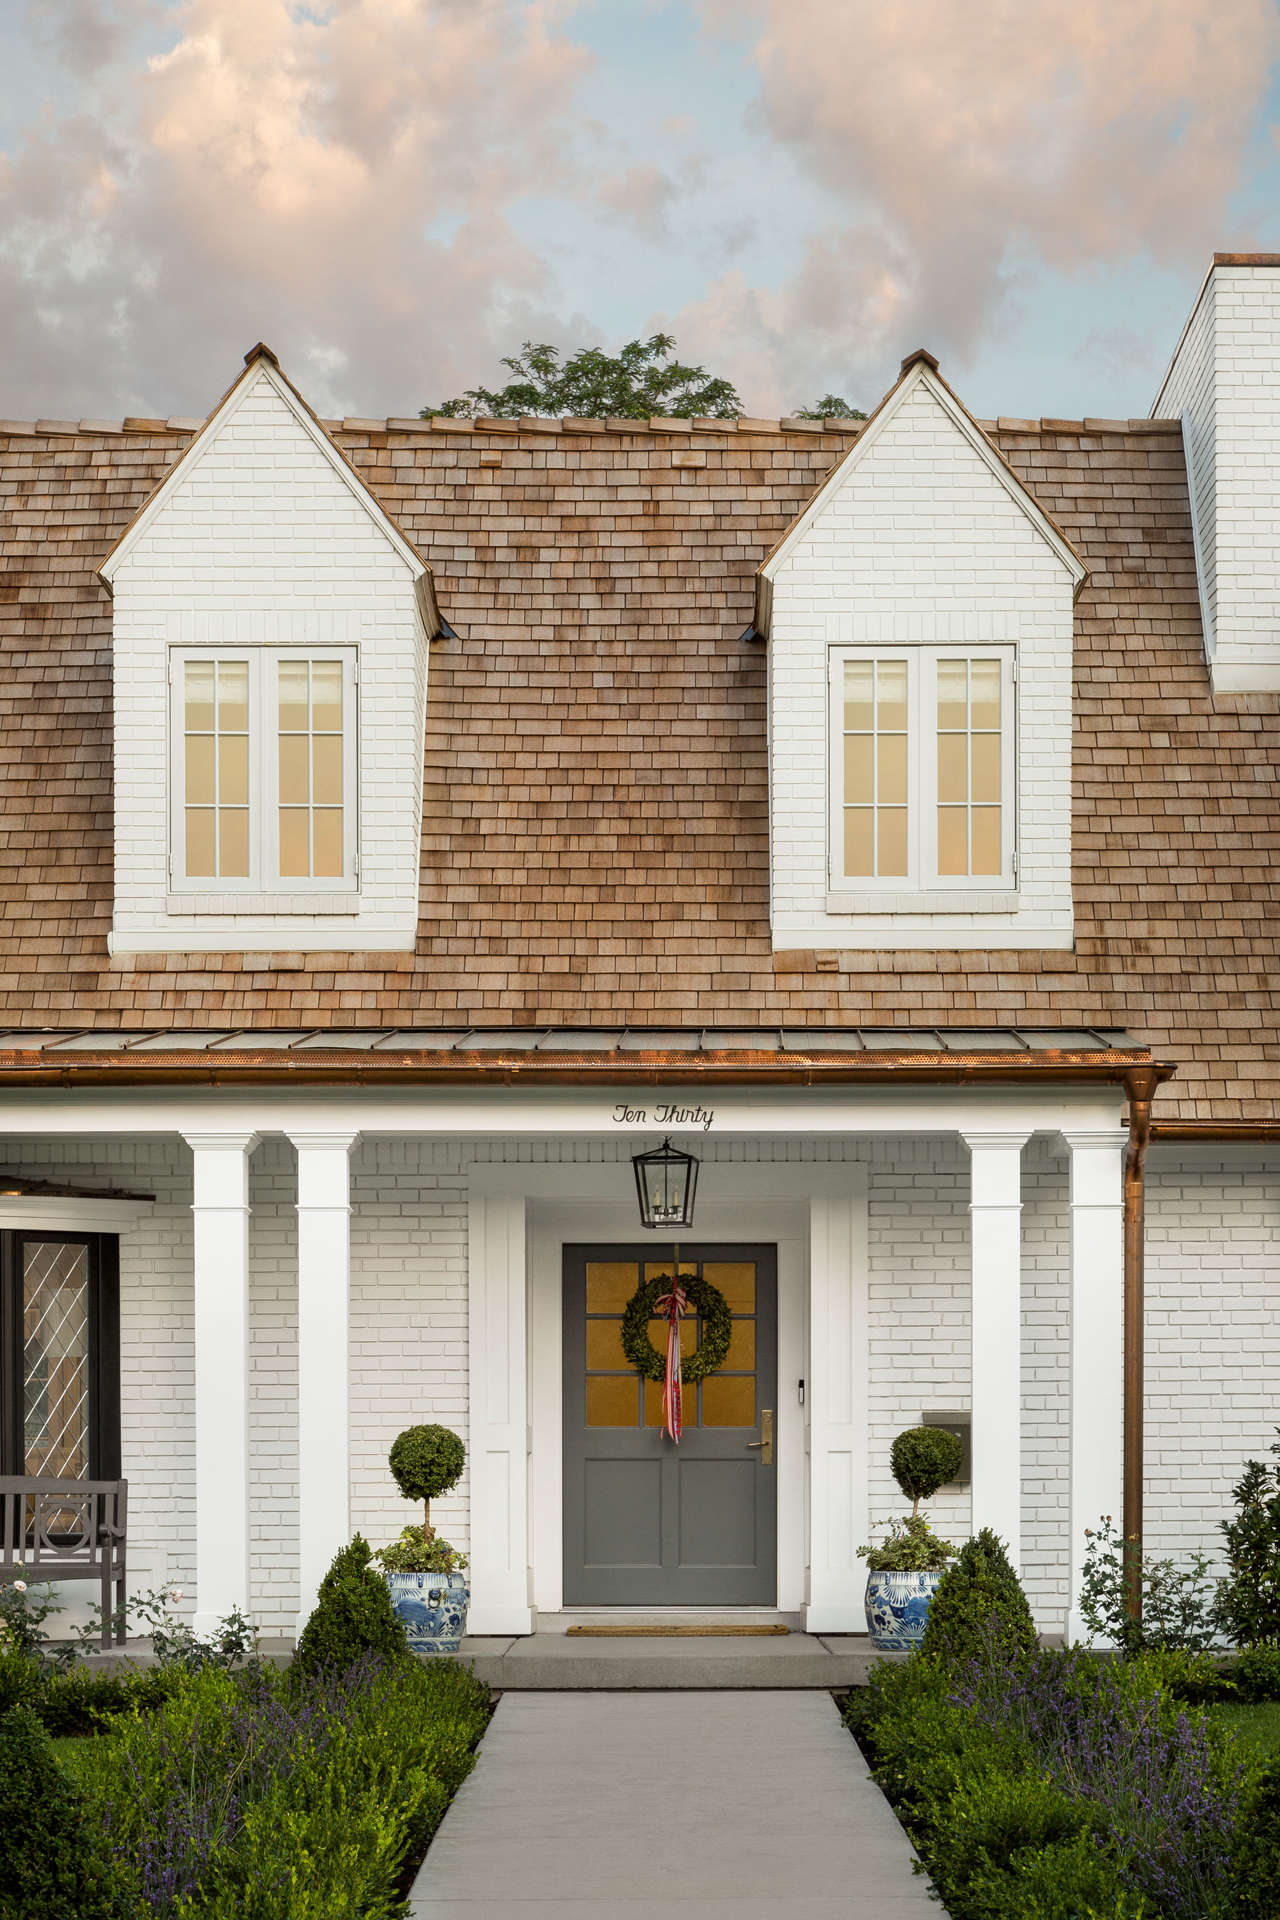 Exterior of a beautiful white brick Tudor home with grey door with wreath. #thefoxgroup #houseexterior #tudor #whitebrick